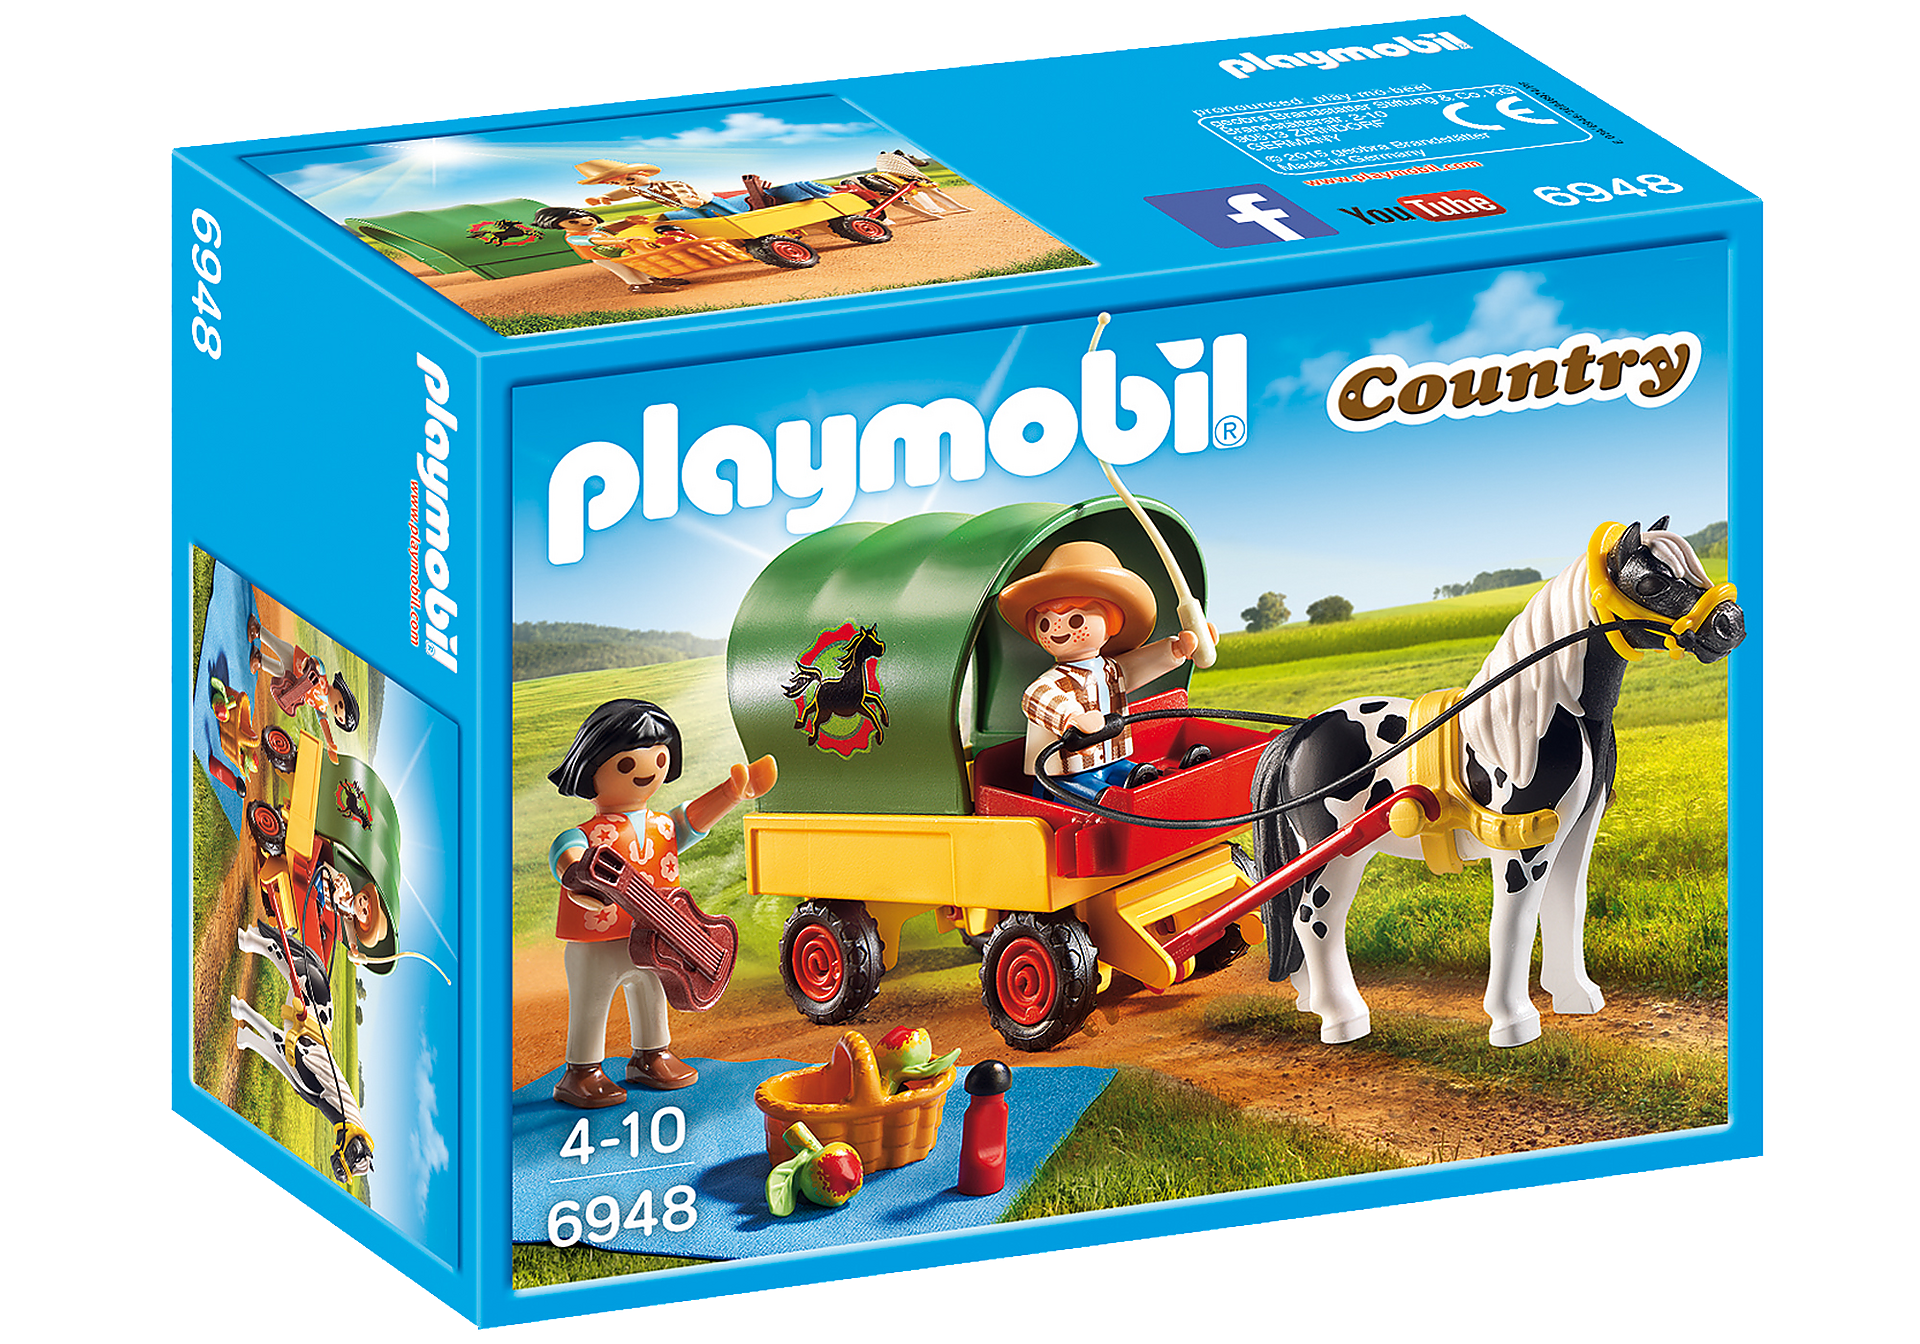 http://media.playmobil.com/i/playmobil/6948_product_box_front/Picnic with Pony Wagon